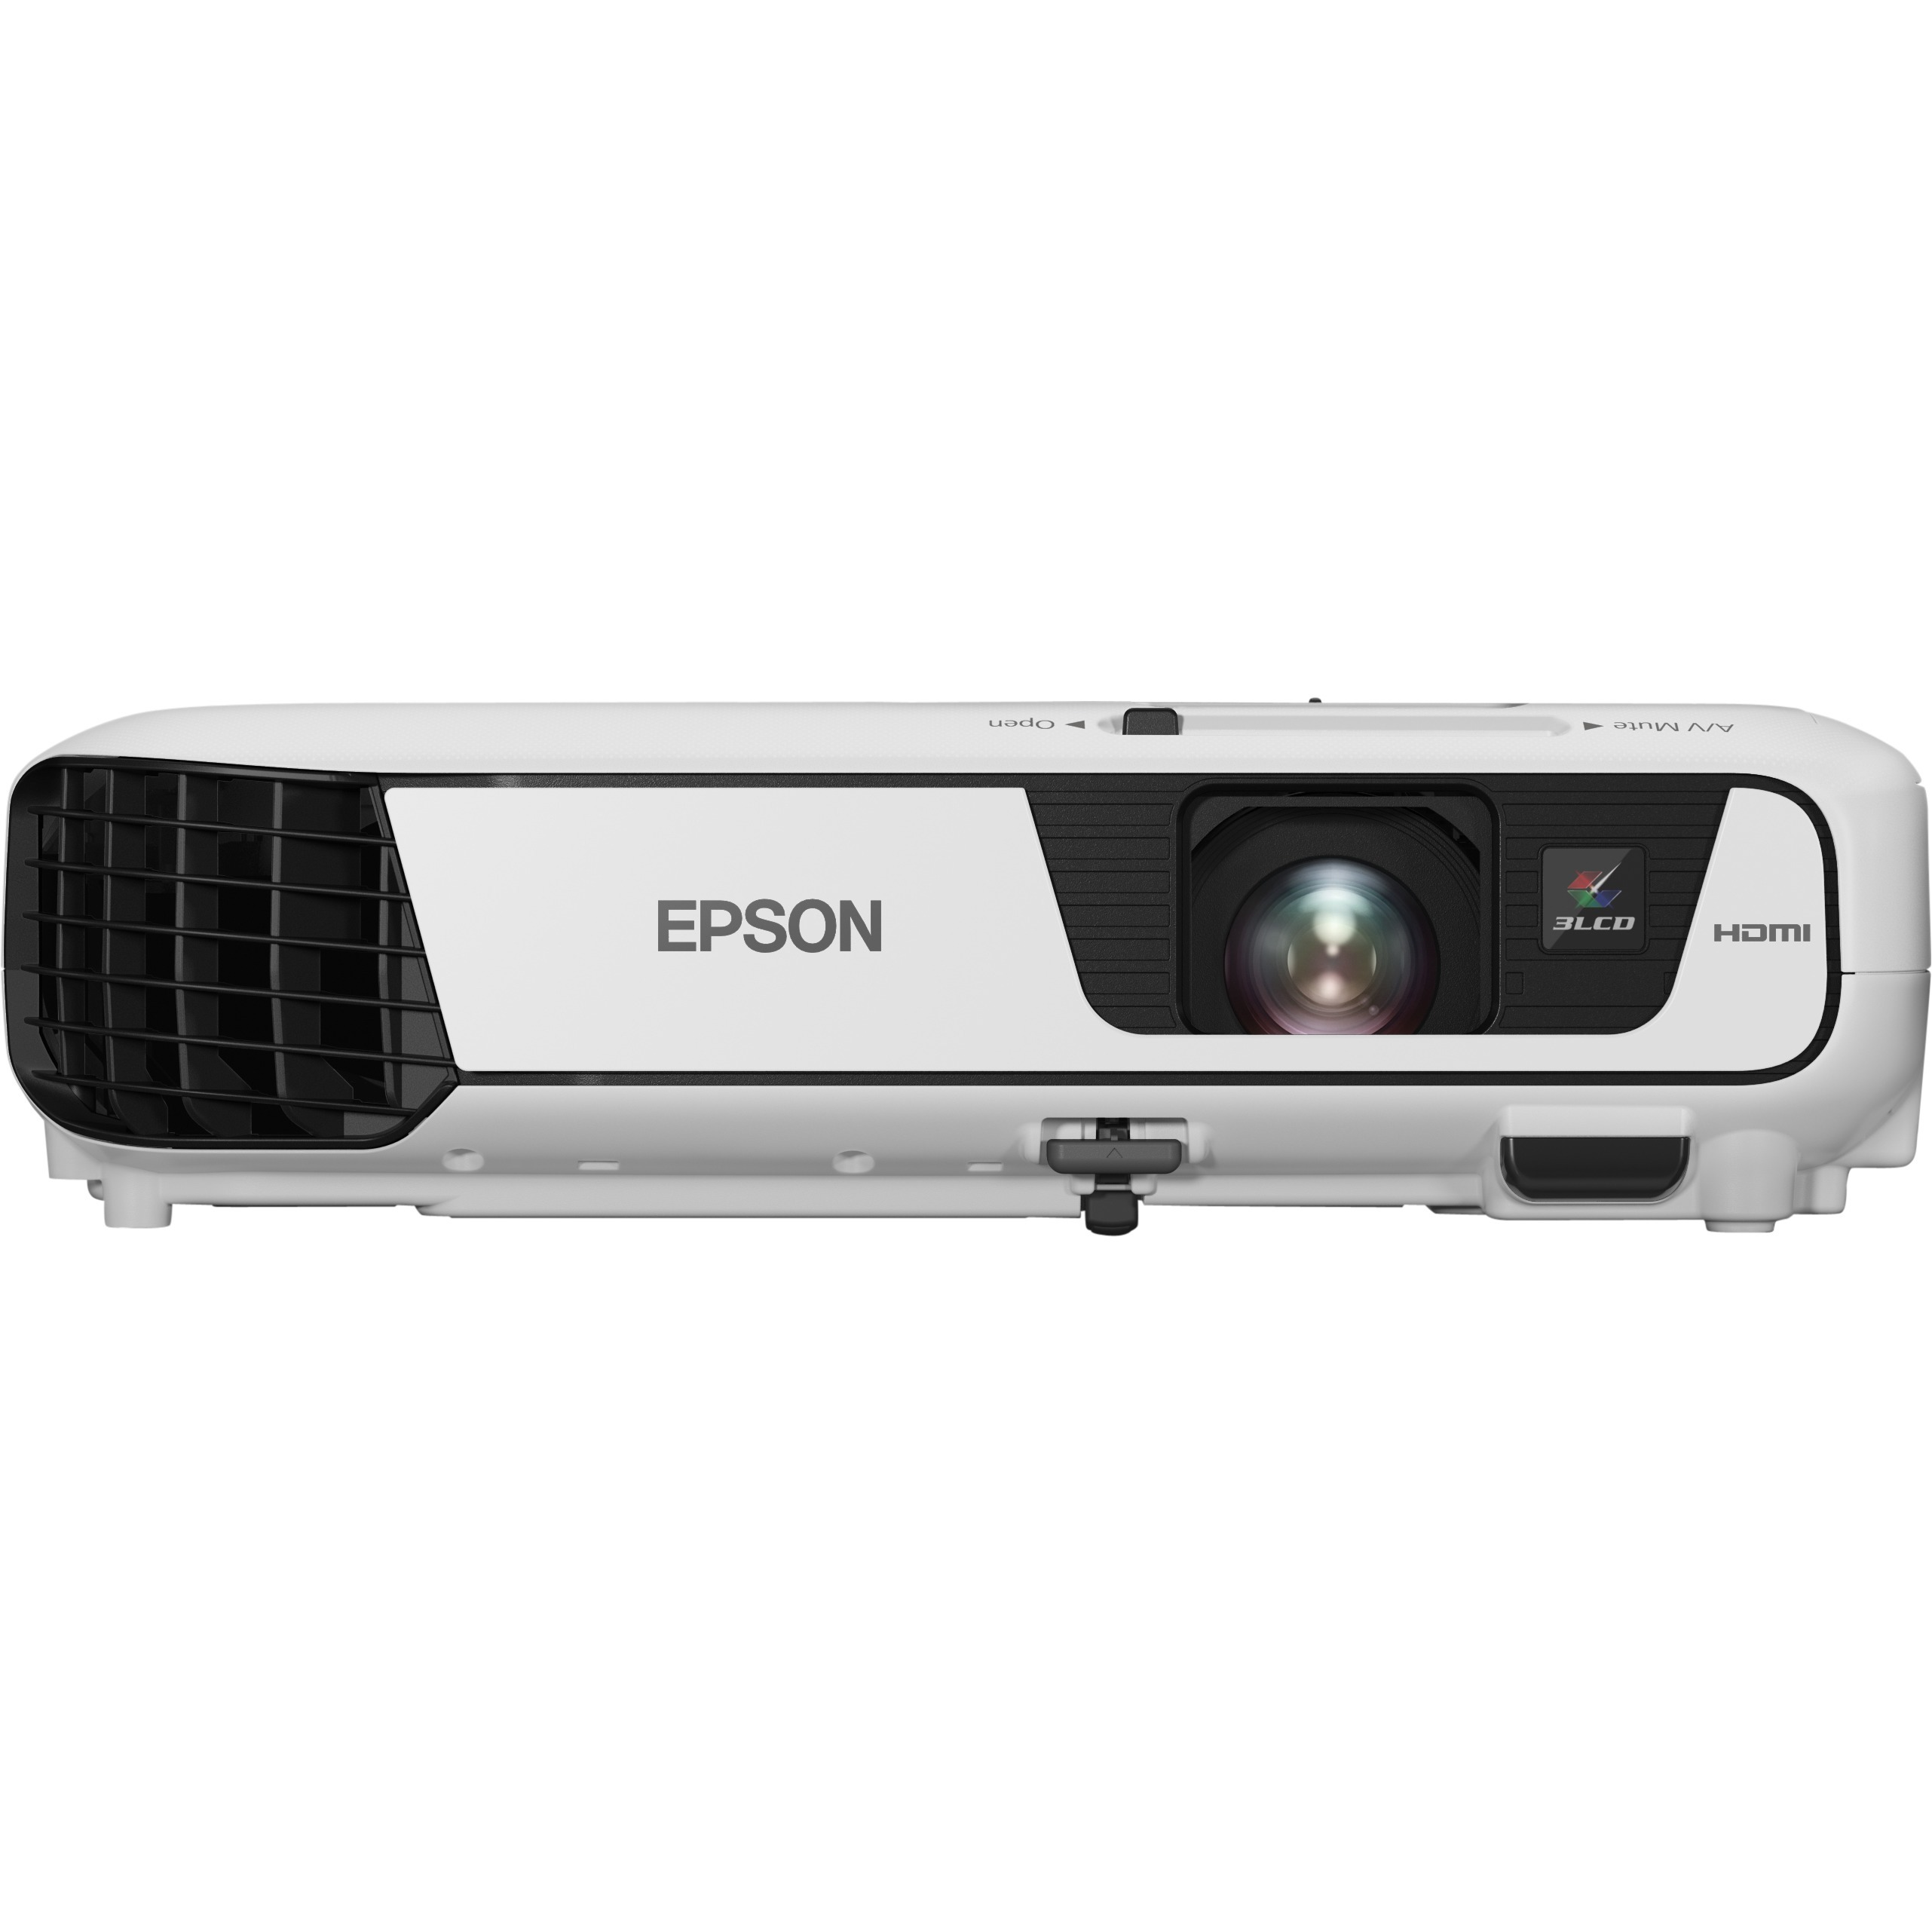 Epson EB-S31 LCD Projector - 4:3 - Front, Ceiling - 200 W - 5000 Hour Normal Mode - 10000 Hour Economy Mode - 800 x 600 - SVGA - 15,000:1 - 3200 lm - HDMI - USB - 27